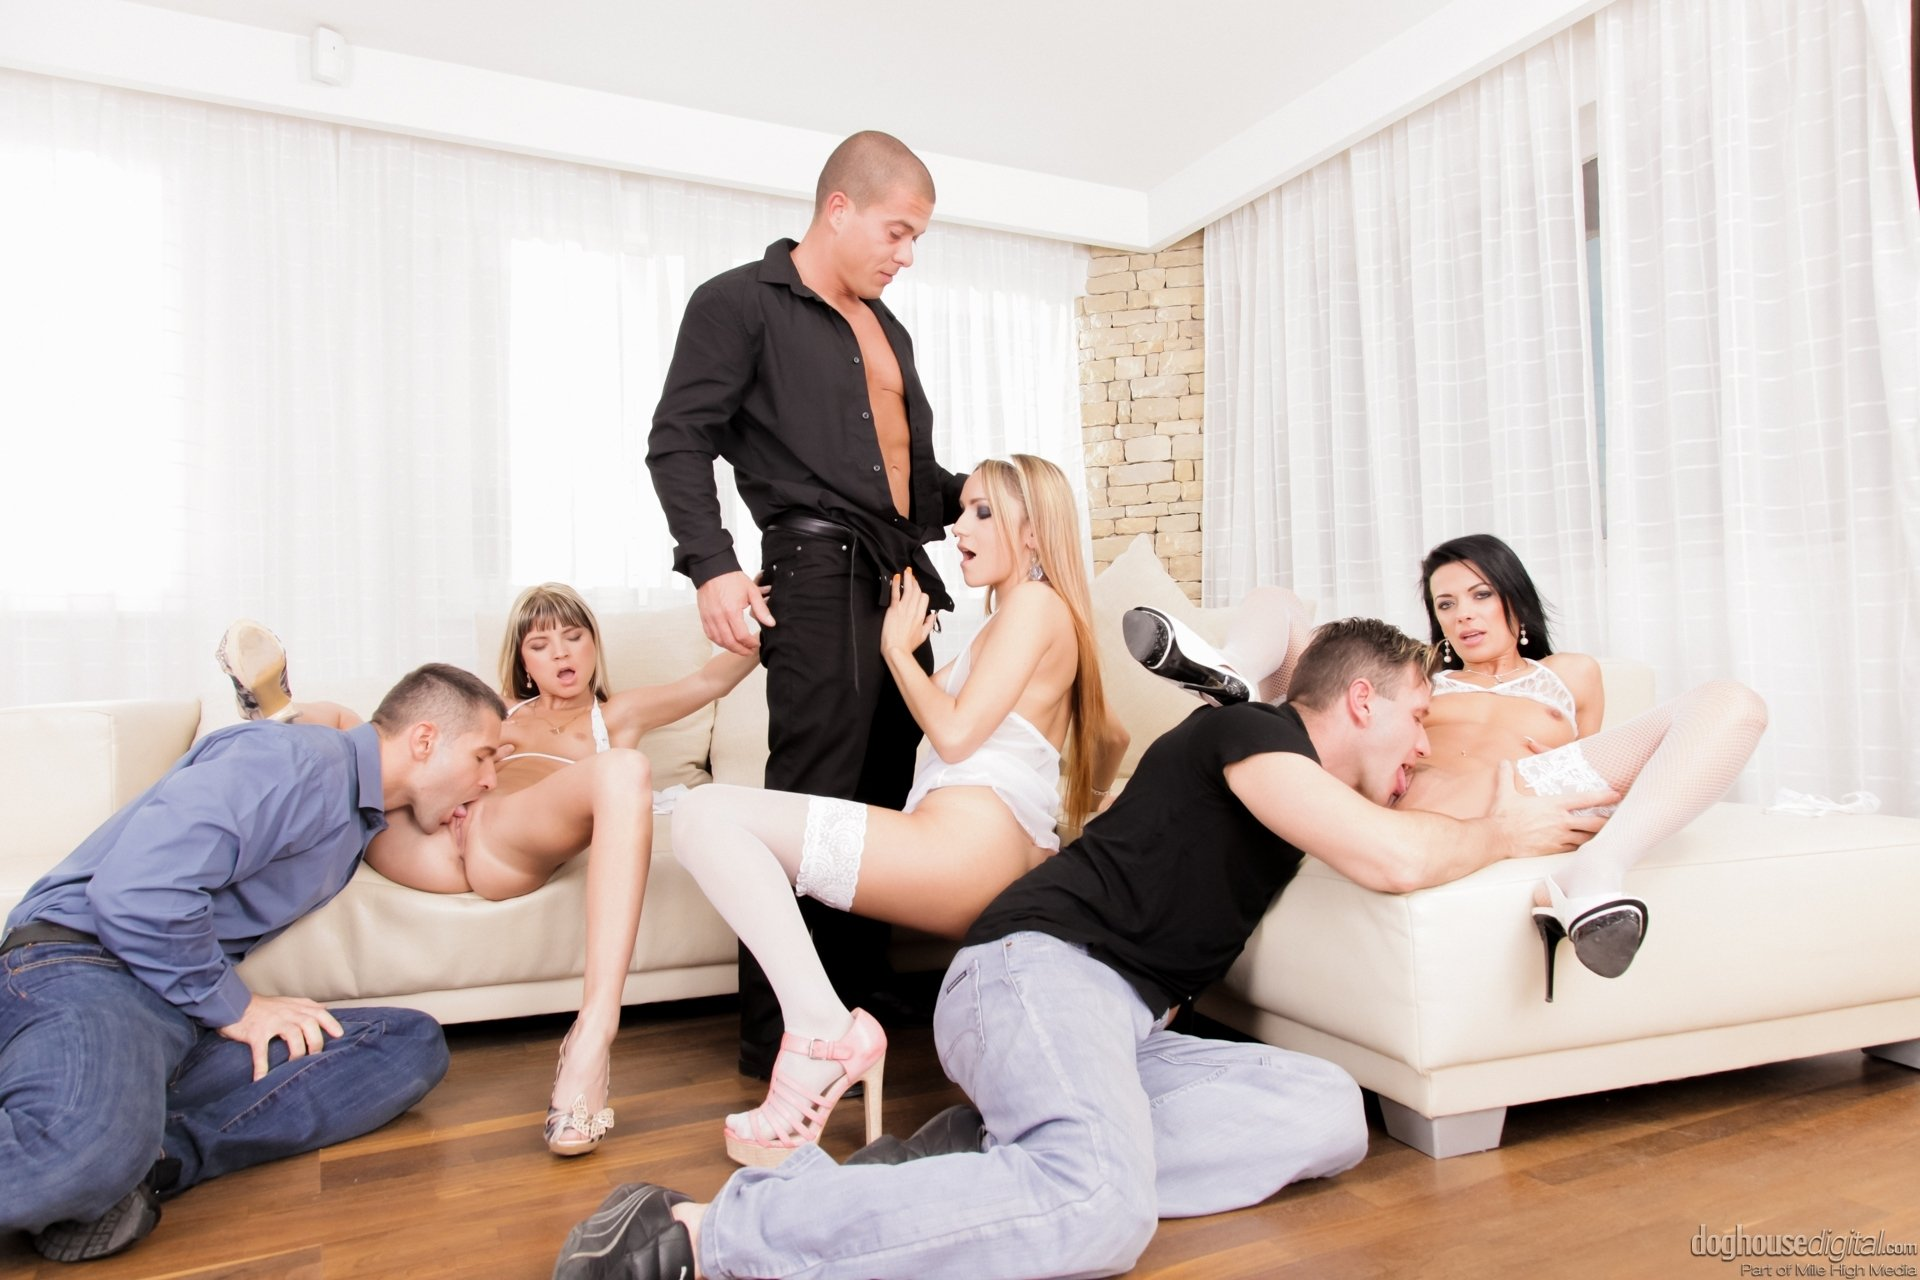 Xxx group sex hd #14